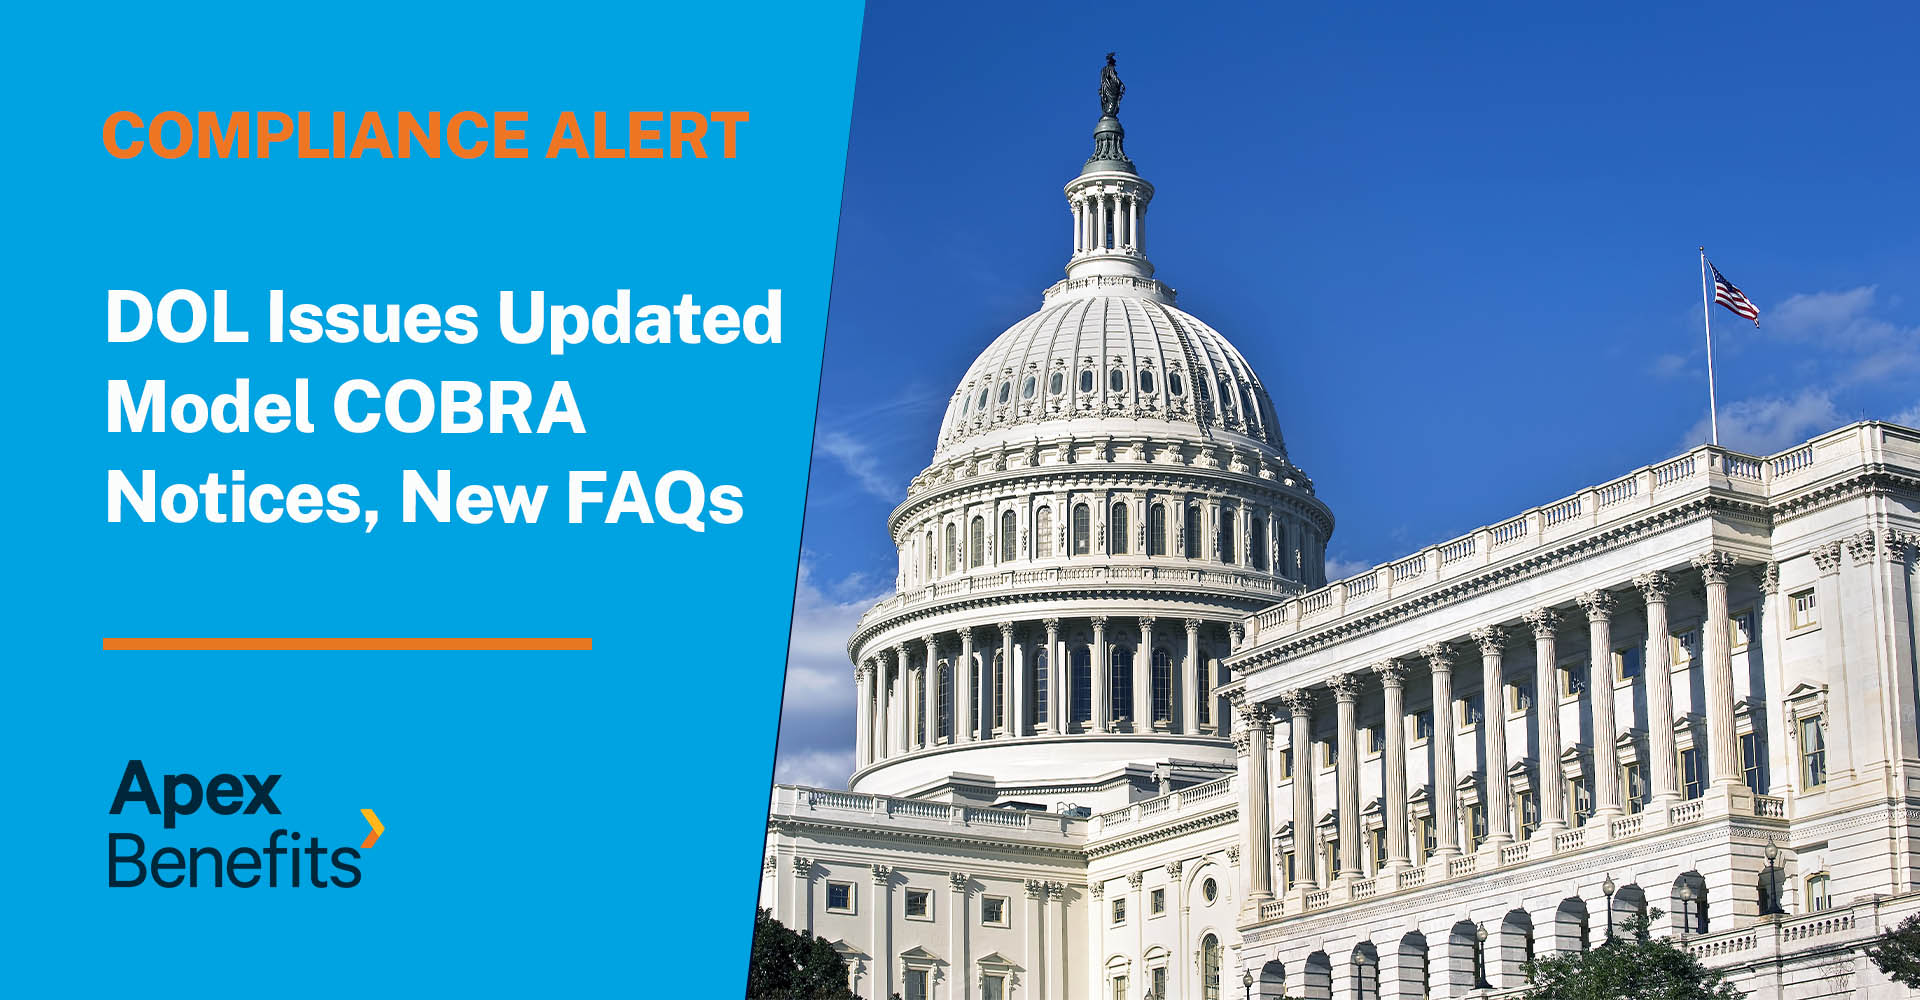 Compliance Alert: DOL Issues Updated Model COBRA Notices, New FAQs